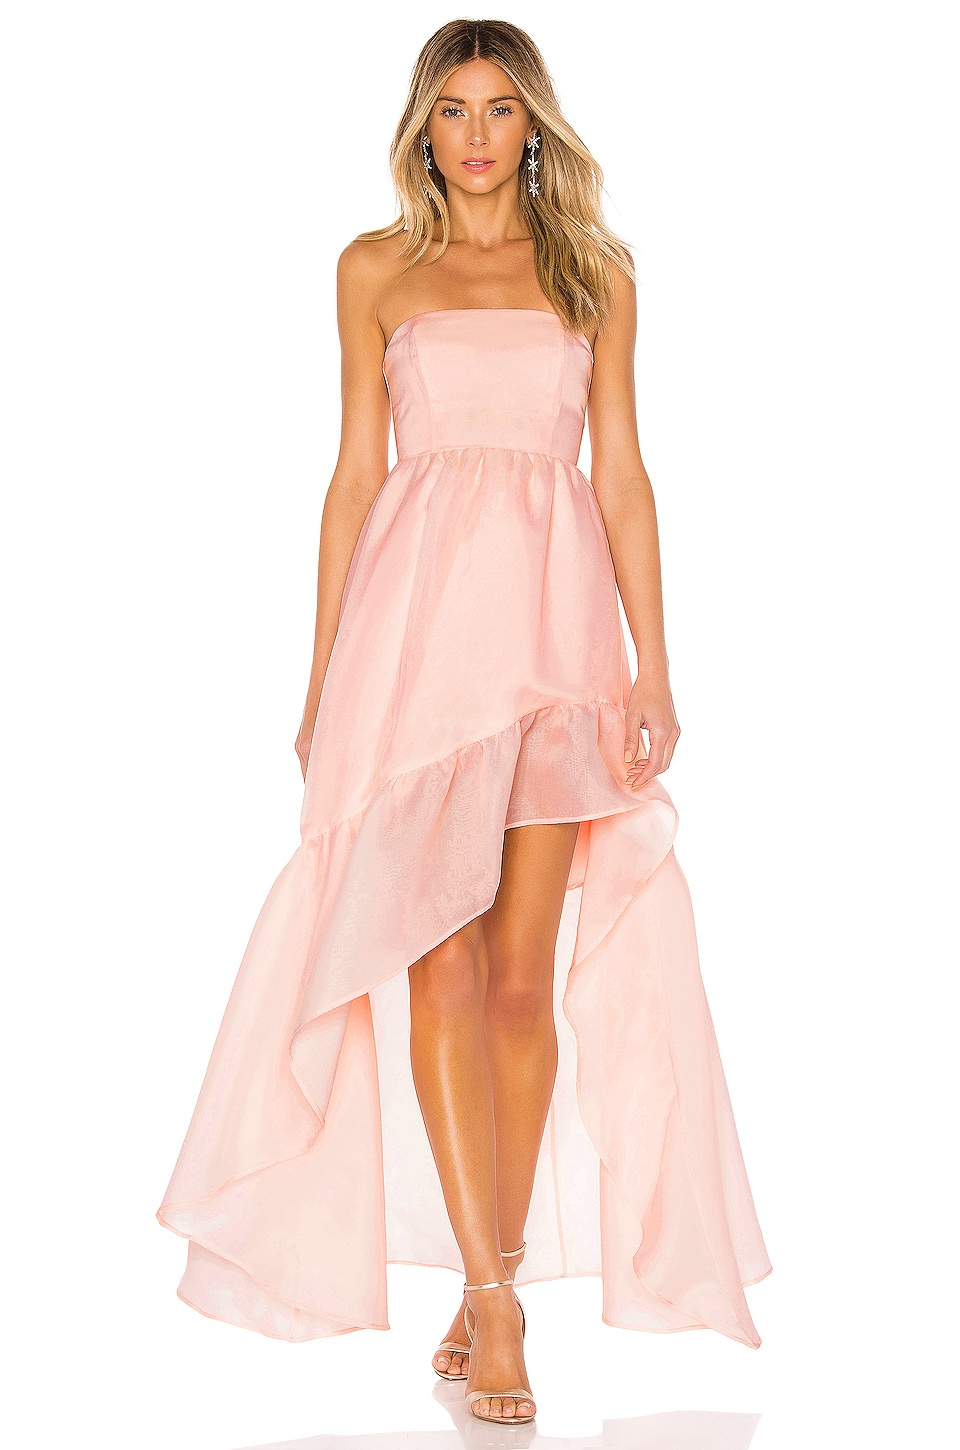 X by NBD Carmelita Gown in Light Pink